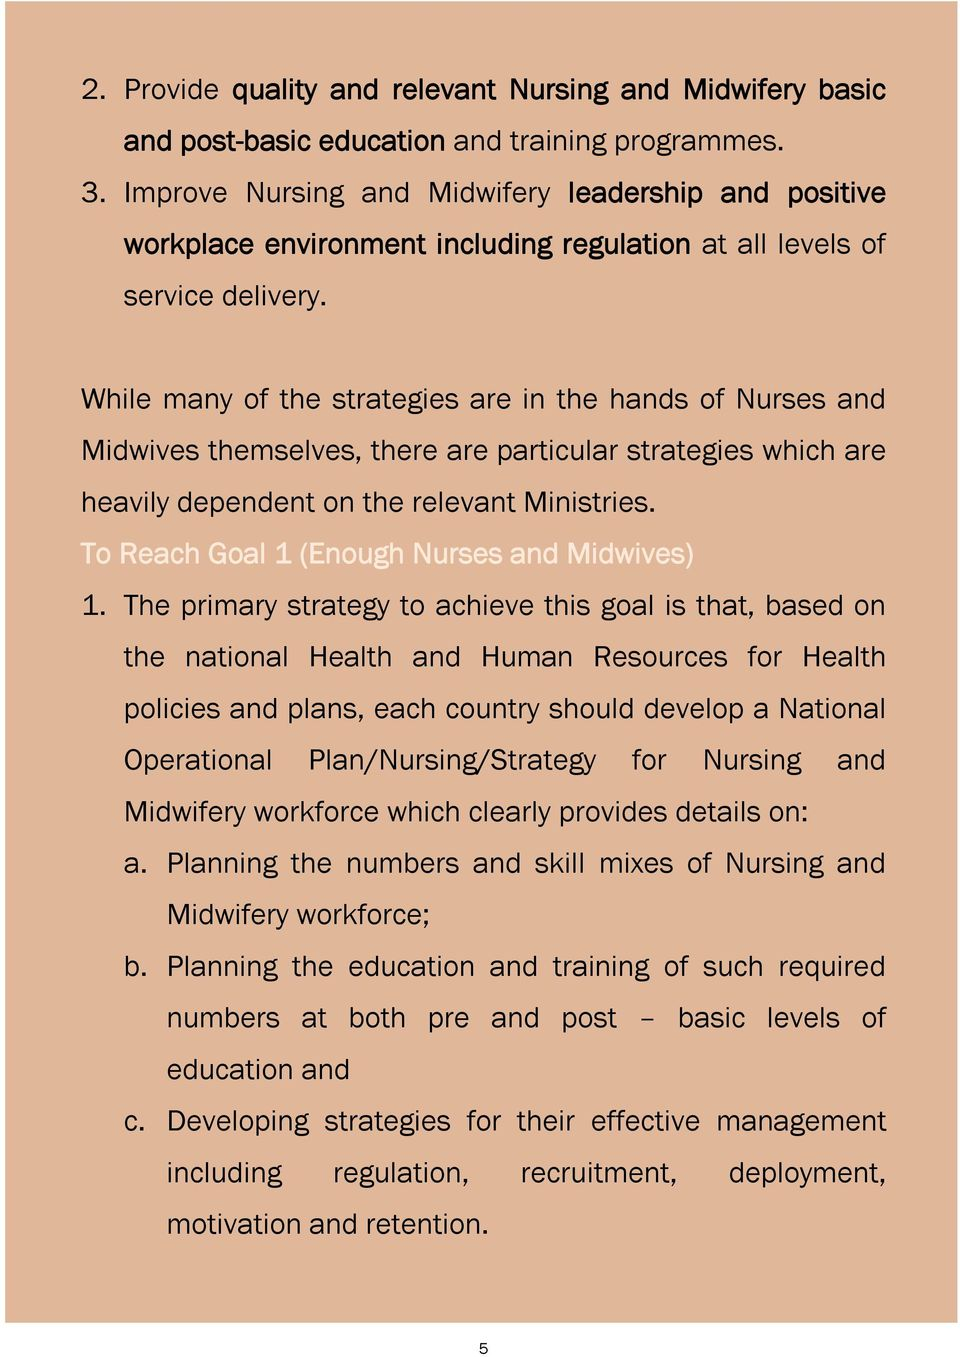 While many of the strategies are in the hands of Nurses and Midwives themselves, there are particular strategies which are heavily dependent on the relevant Ministries.